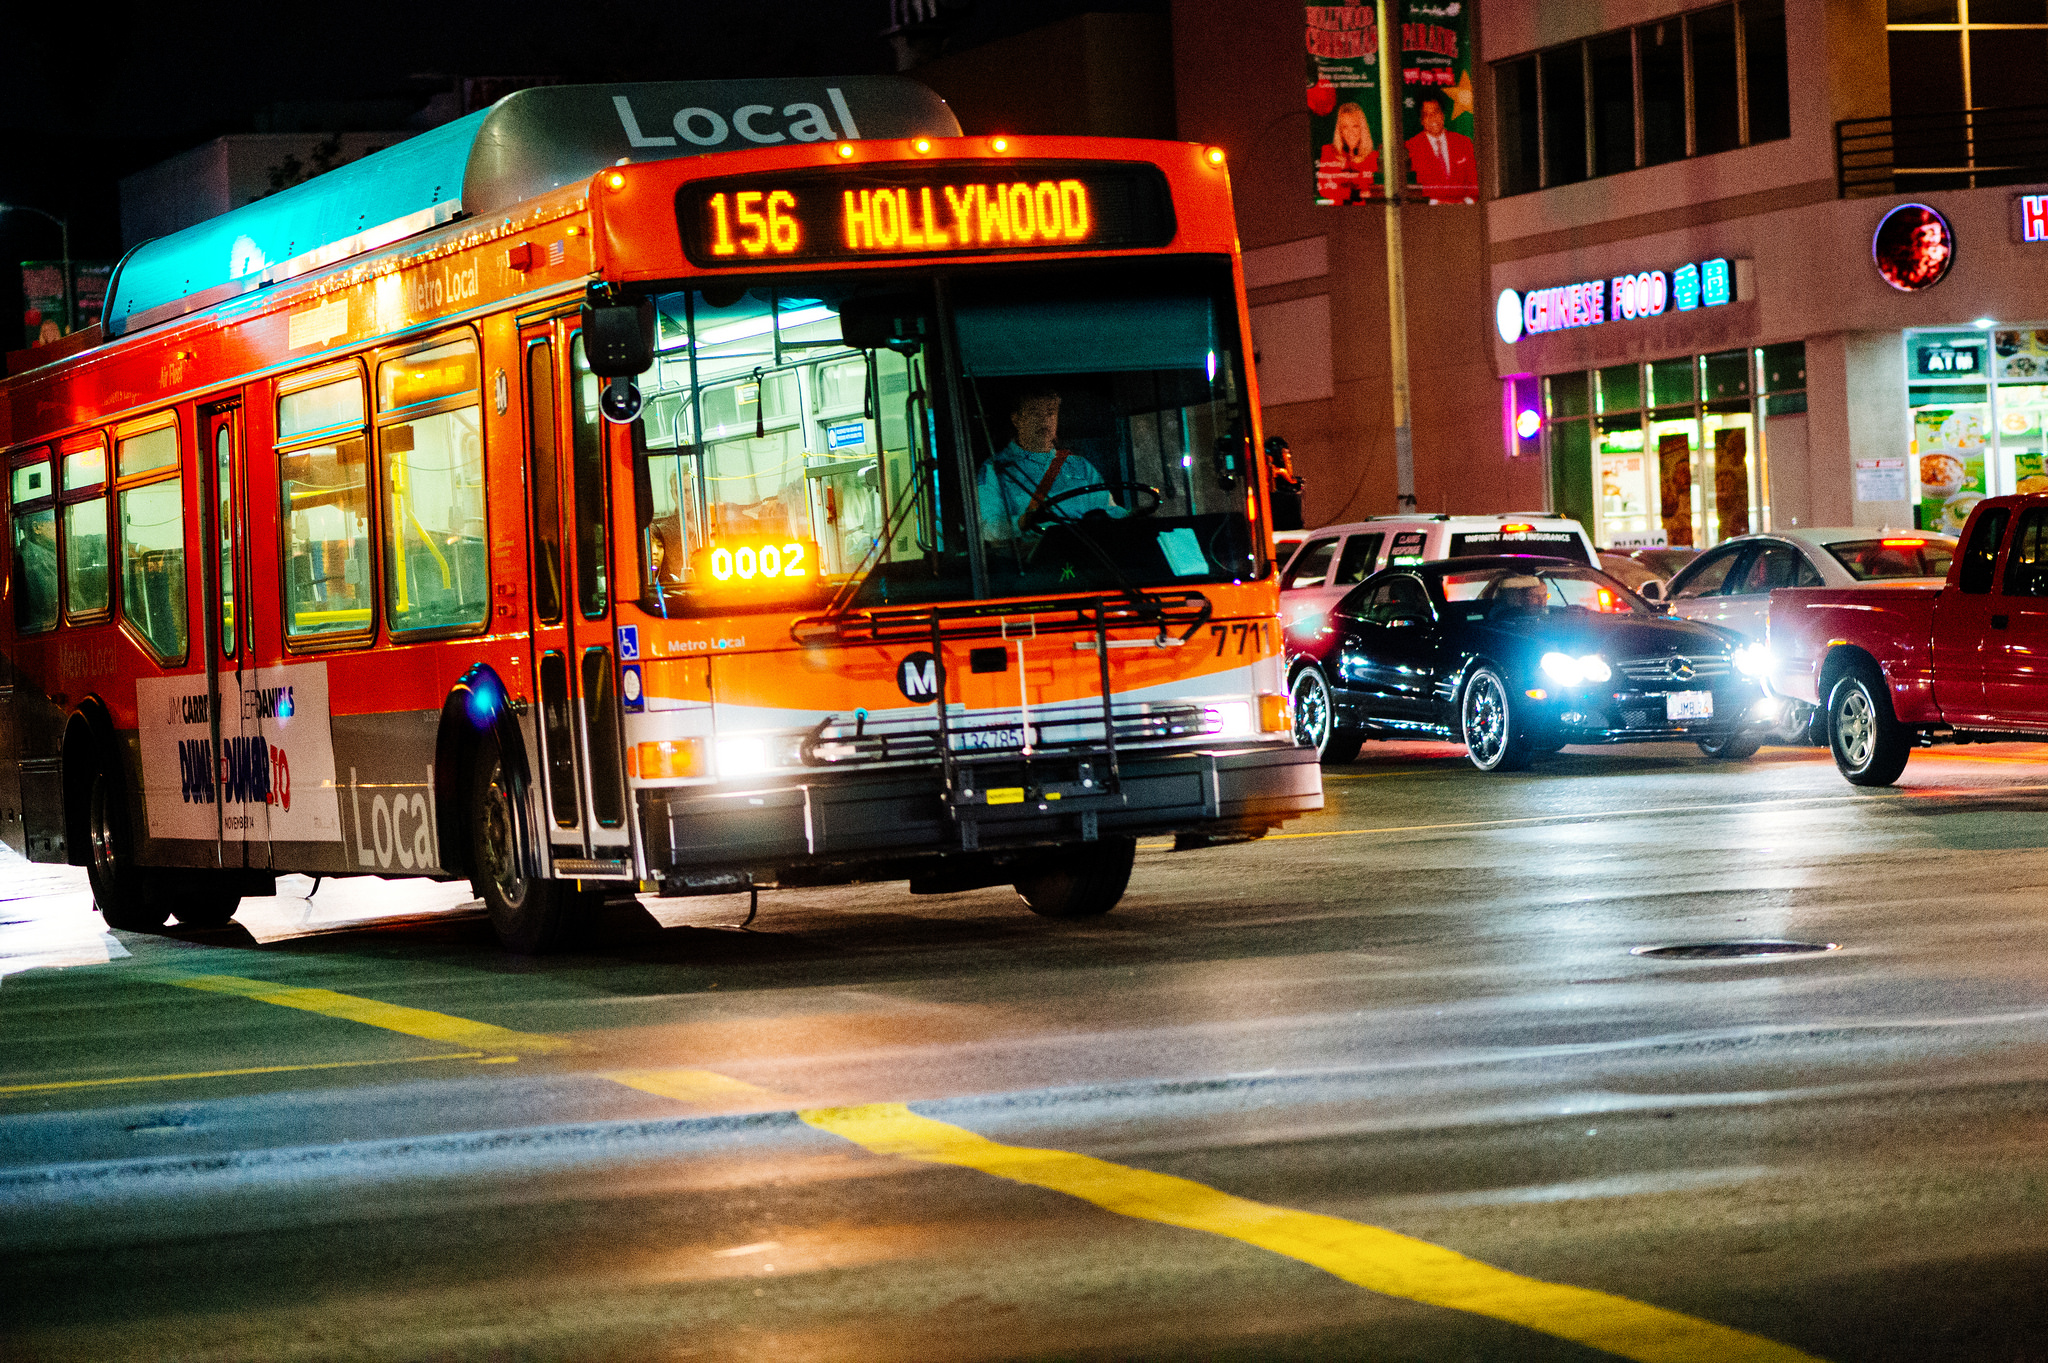 The traditional fixed-route bus. Photo by Steve Hymon/Metro.